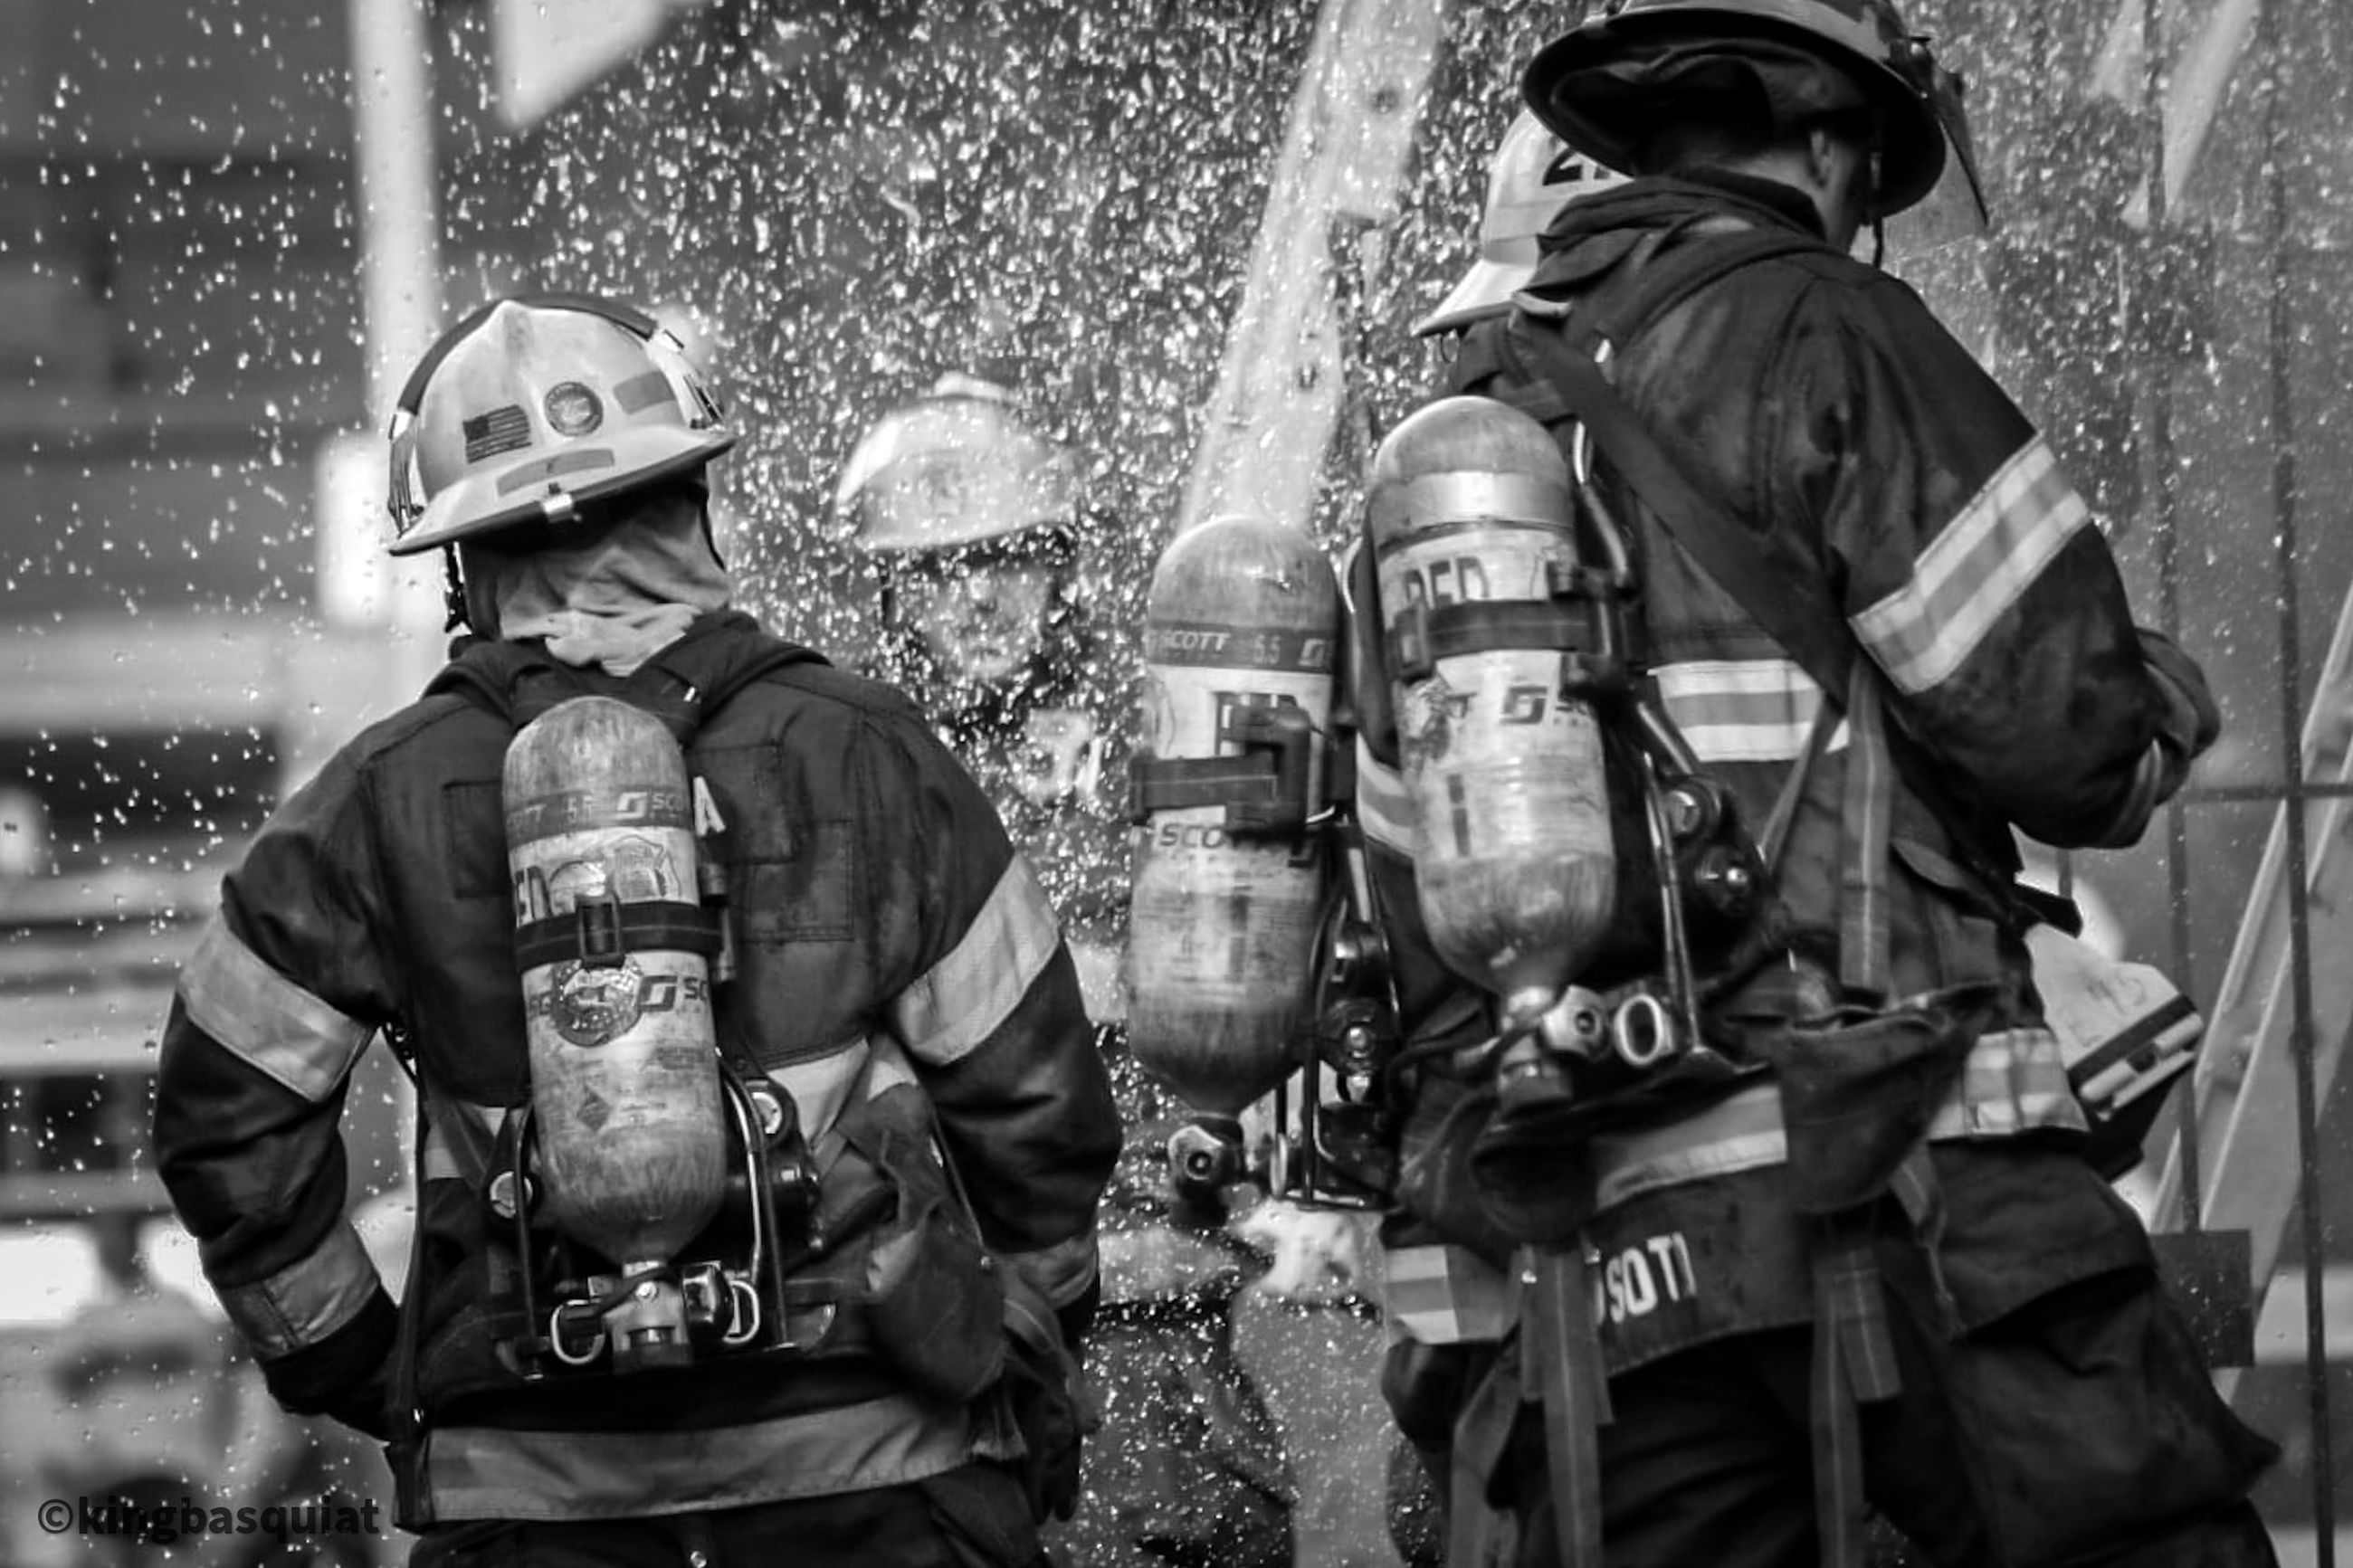 person, uniform, government, clothing, firefighter, protection, men, black and white, headwear, security, helmet, group of people, accidents and disasters, adult, monochrome, occupation, soldier, troop, emergency services occupation, courage, day, work helmet, military, protective workwear, police force, police, armed forces, law, outdoors